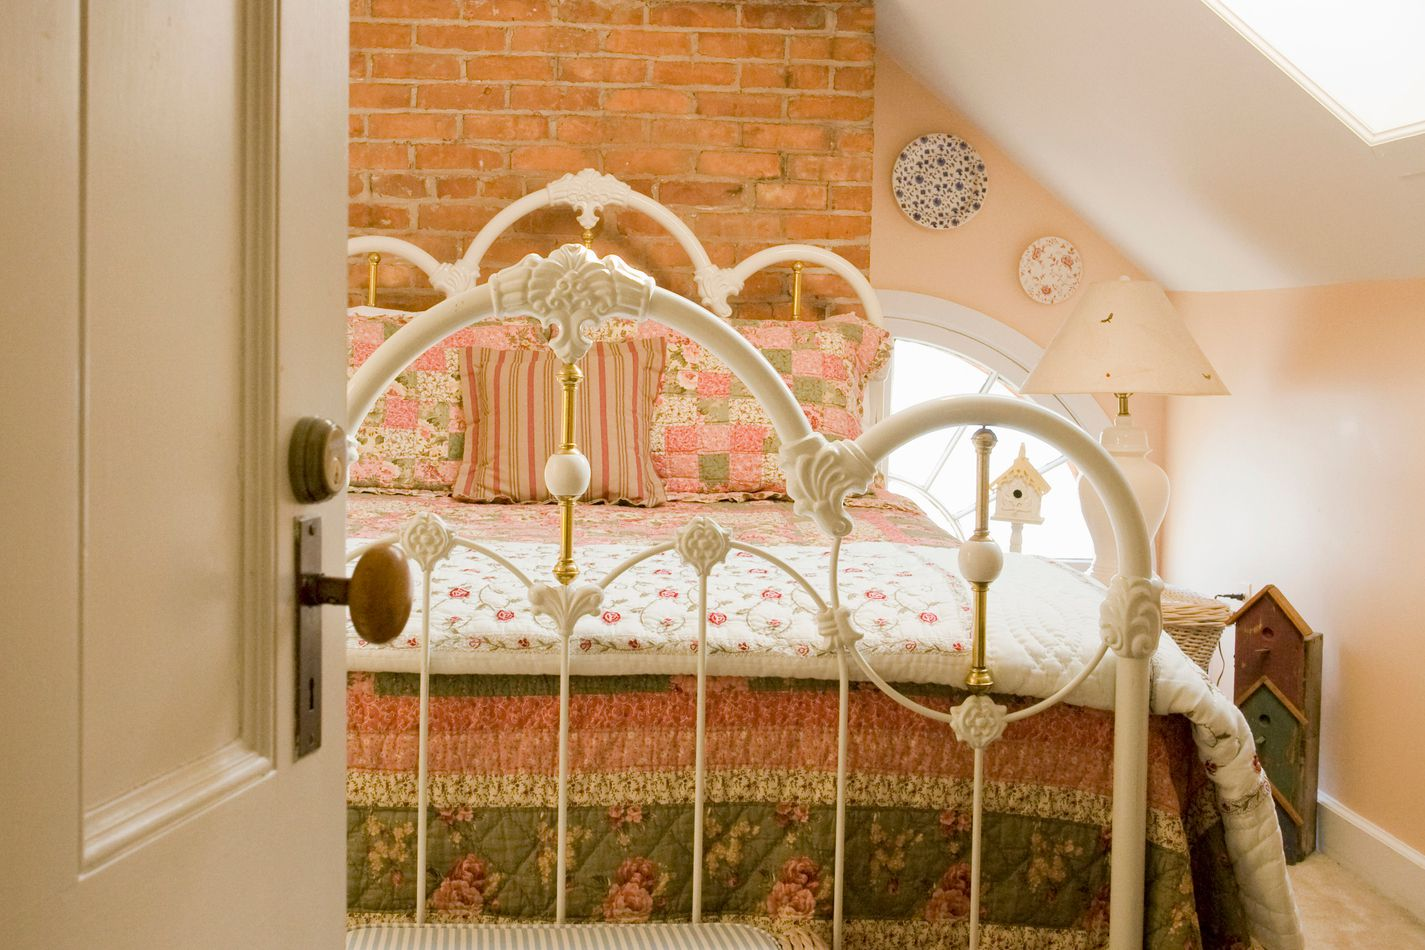 feng shui tips for bed placement in a bedroom